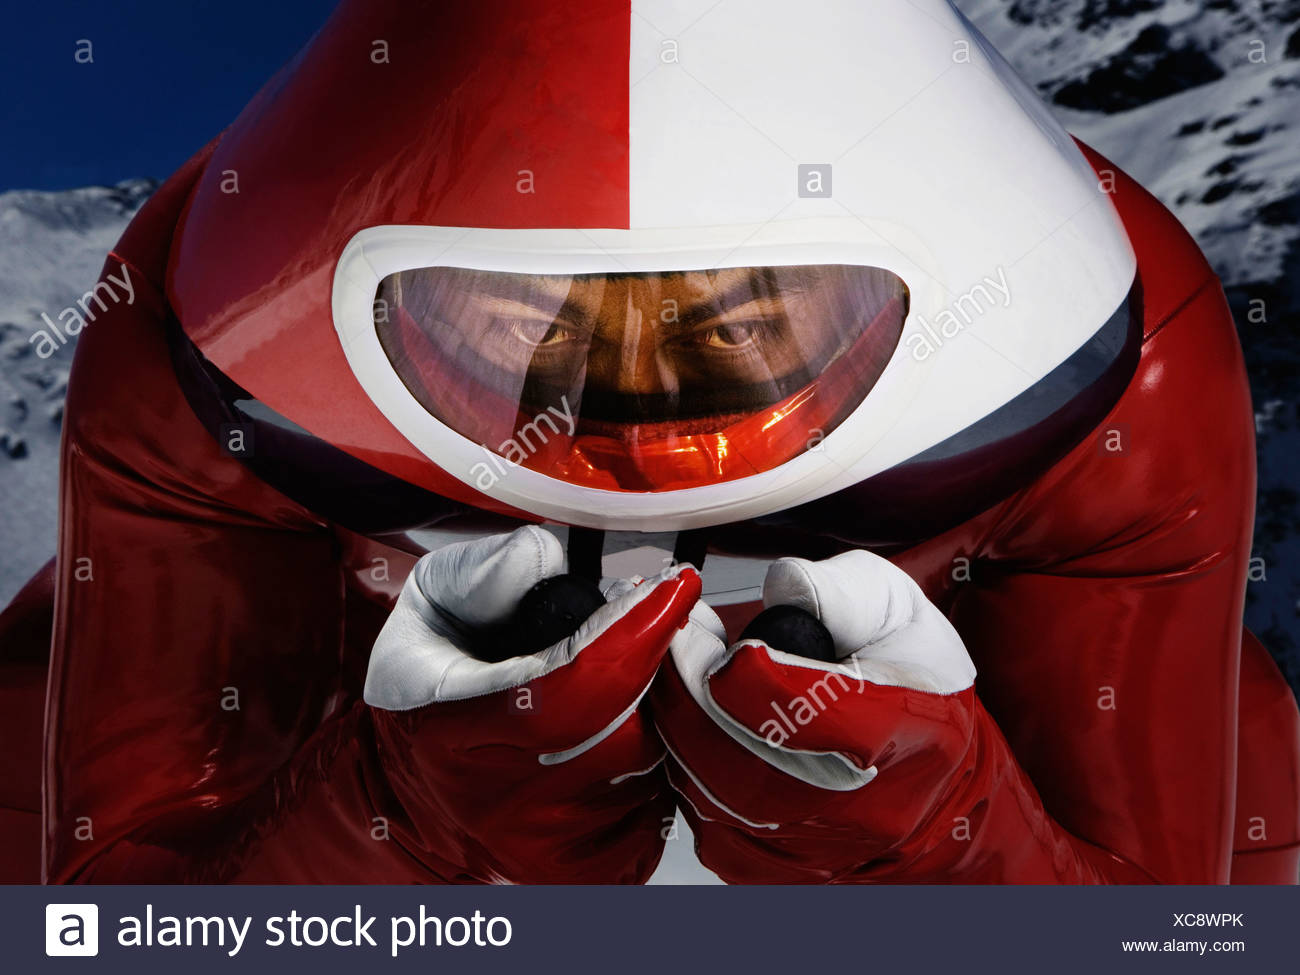 Speed skier direct to camera Stock Photo